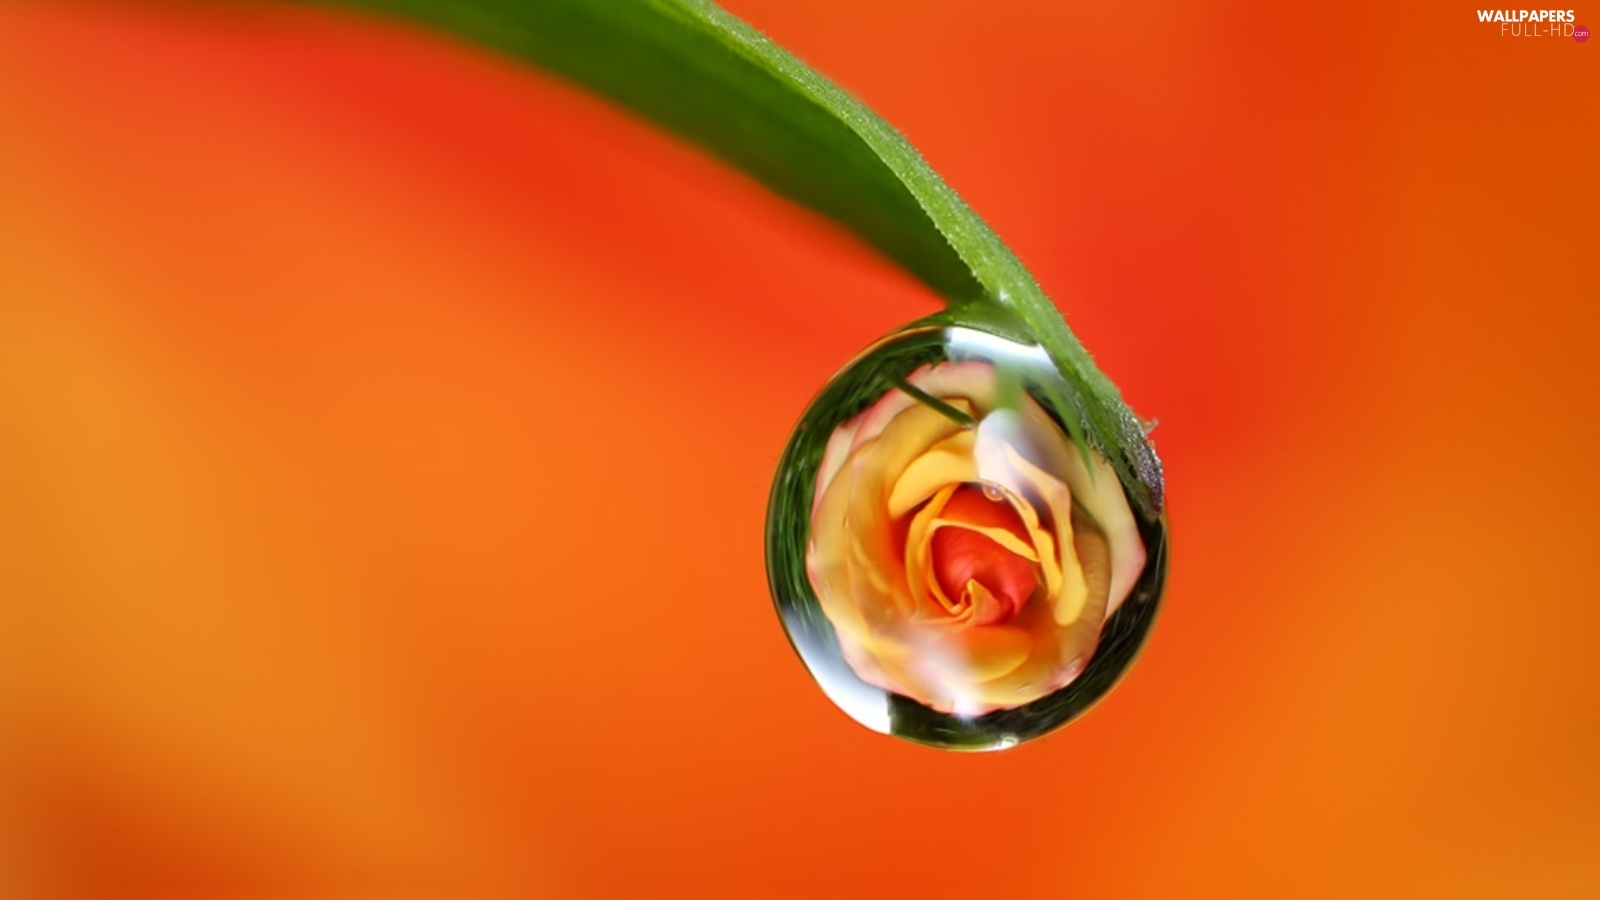 rose, Rosy, leaf, droplet